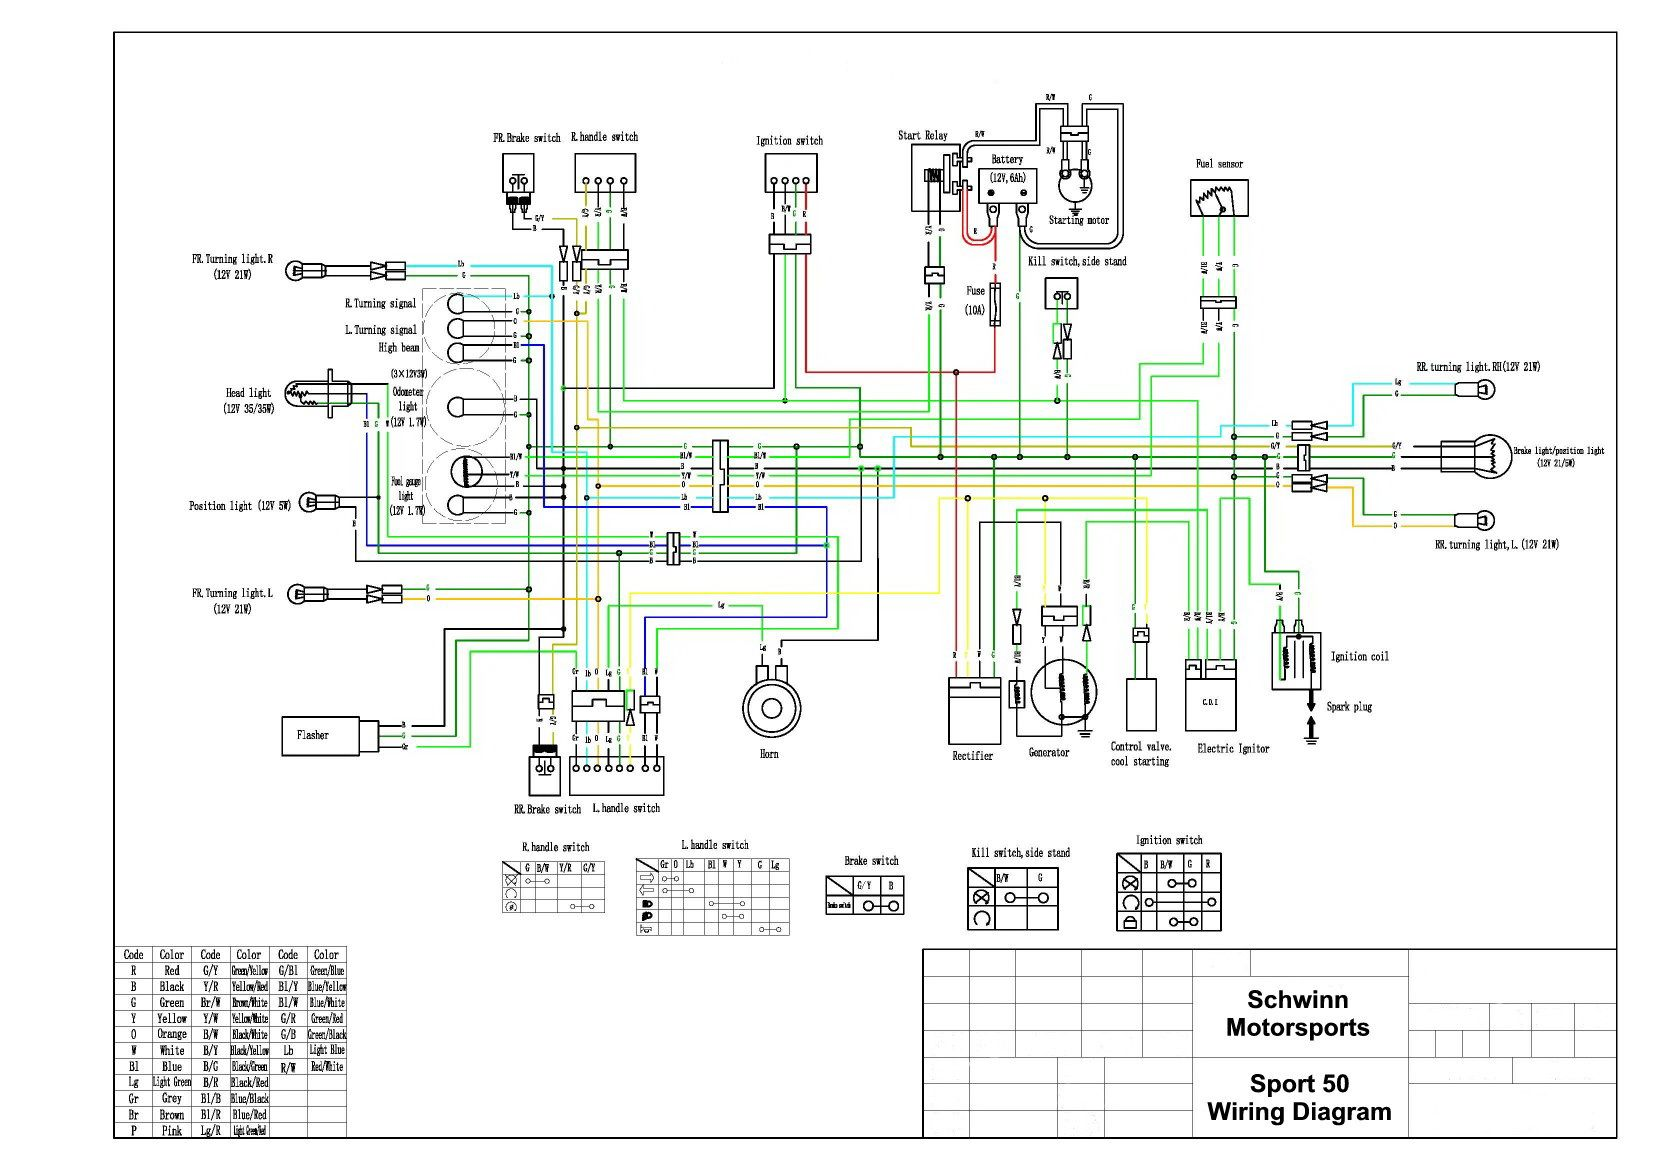 Tao Atv Wiring Diagram Diagrams Schematics Throughout | Electrical wiring  diagram, Mobility scooter, Electric scooterPinterest